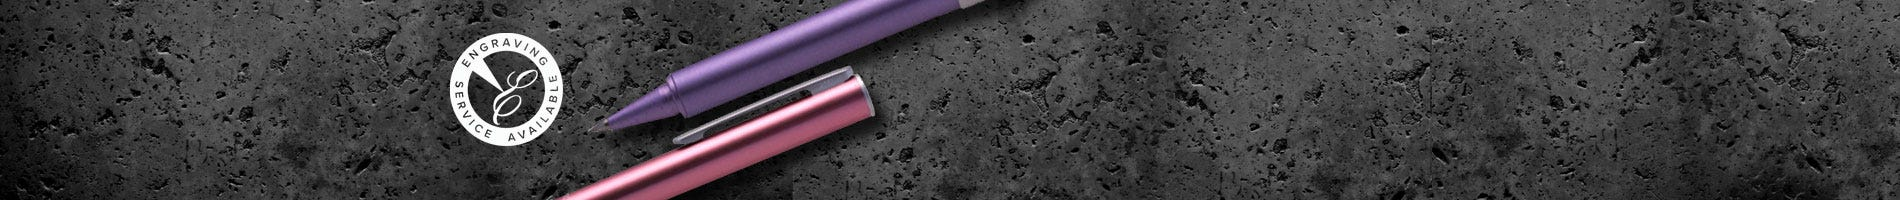 OHTO Tasche pink and purple pencils